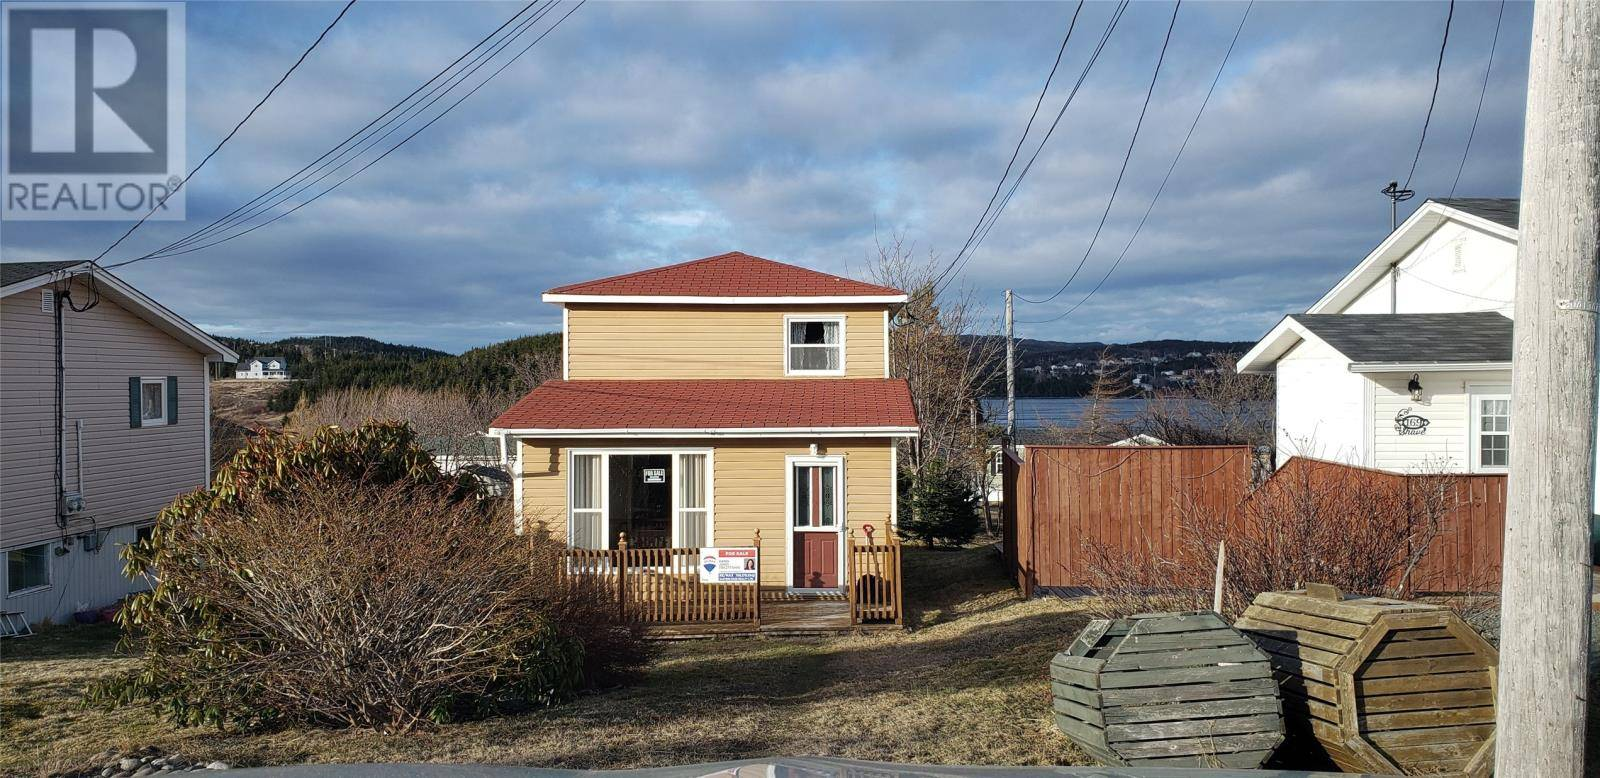 House for sale at 167 Main Rd Lewin's Cove Newfoundland - MLS: 1191366